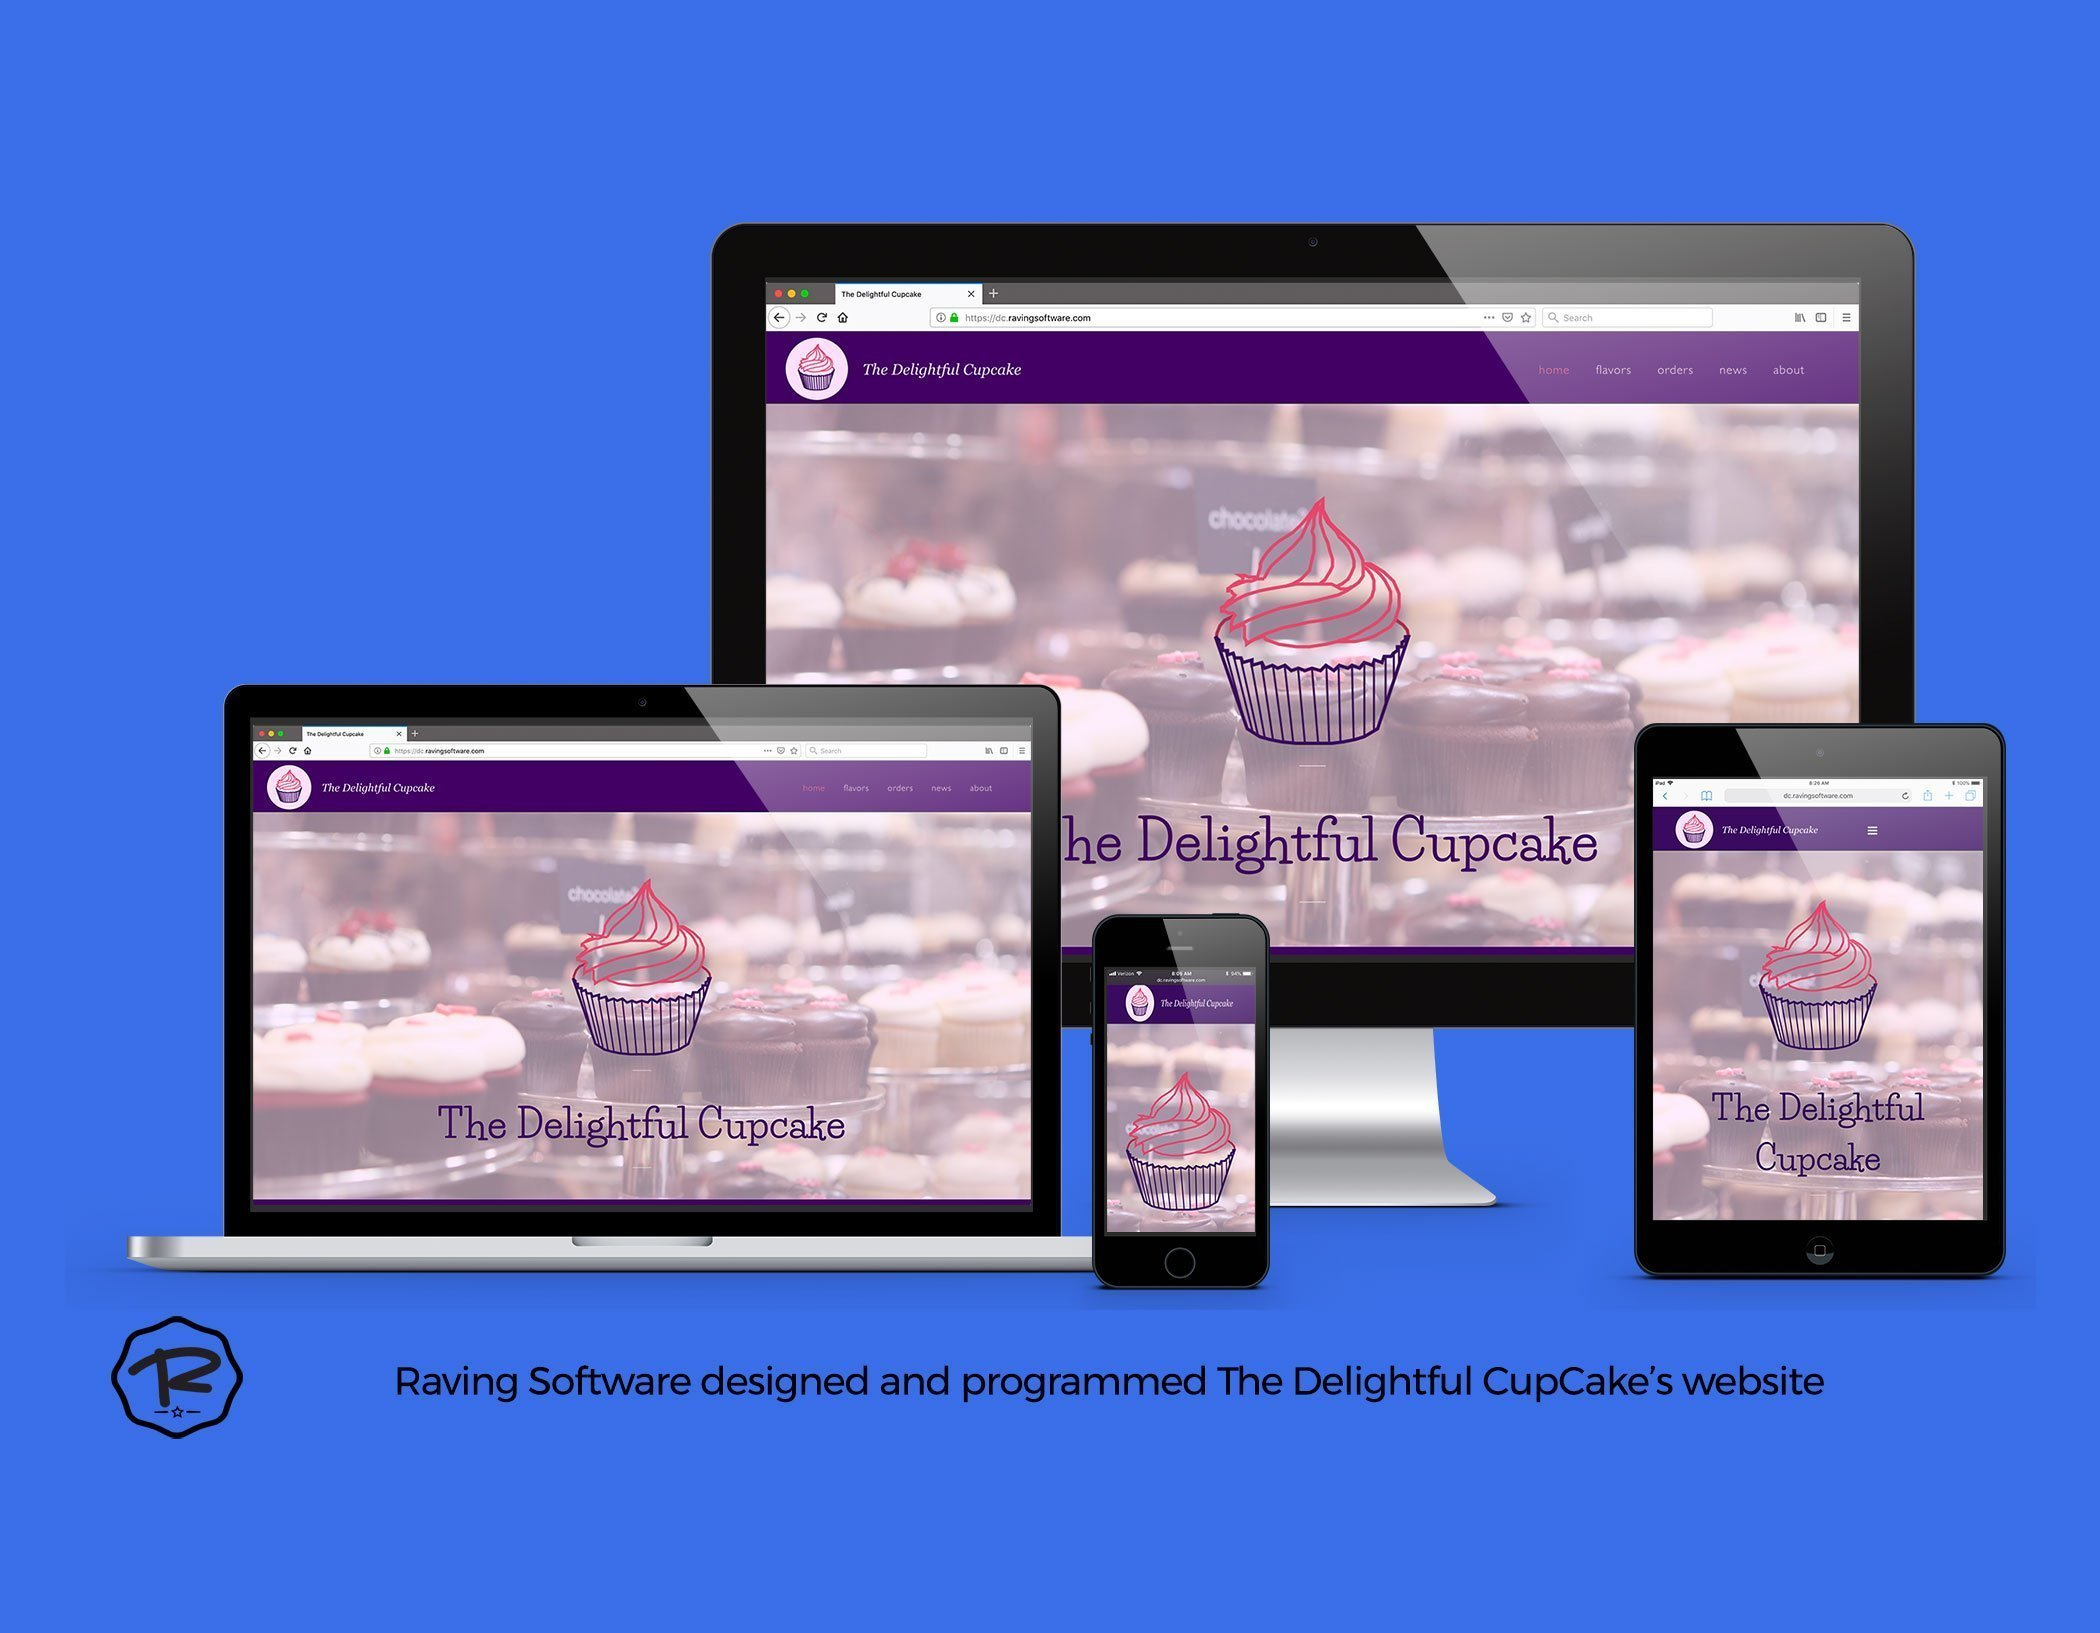 The Delightful Cupcake website created by Raving Software